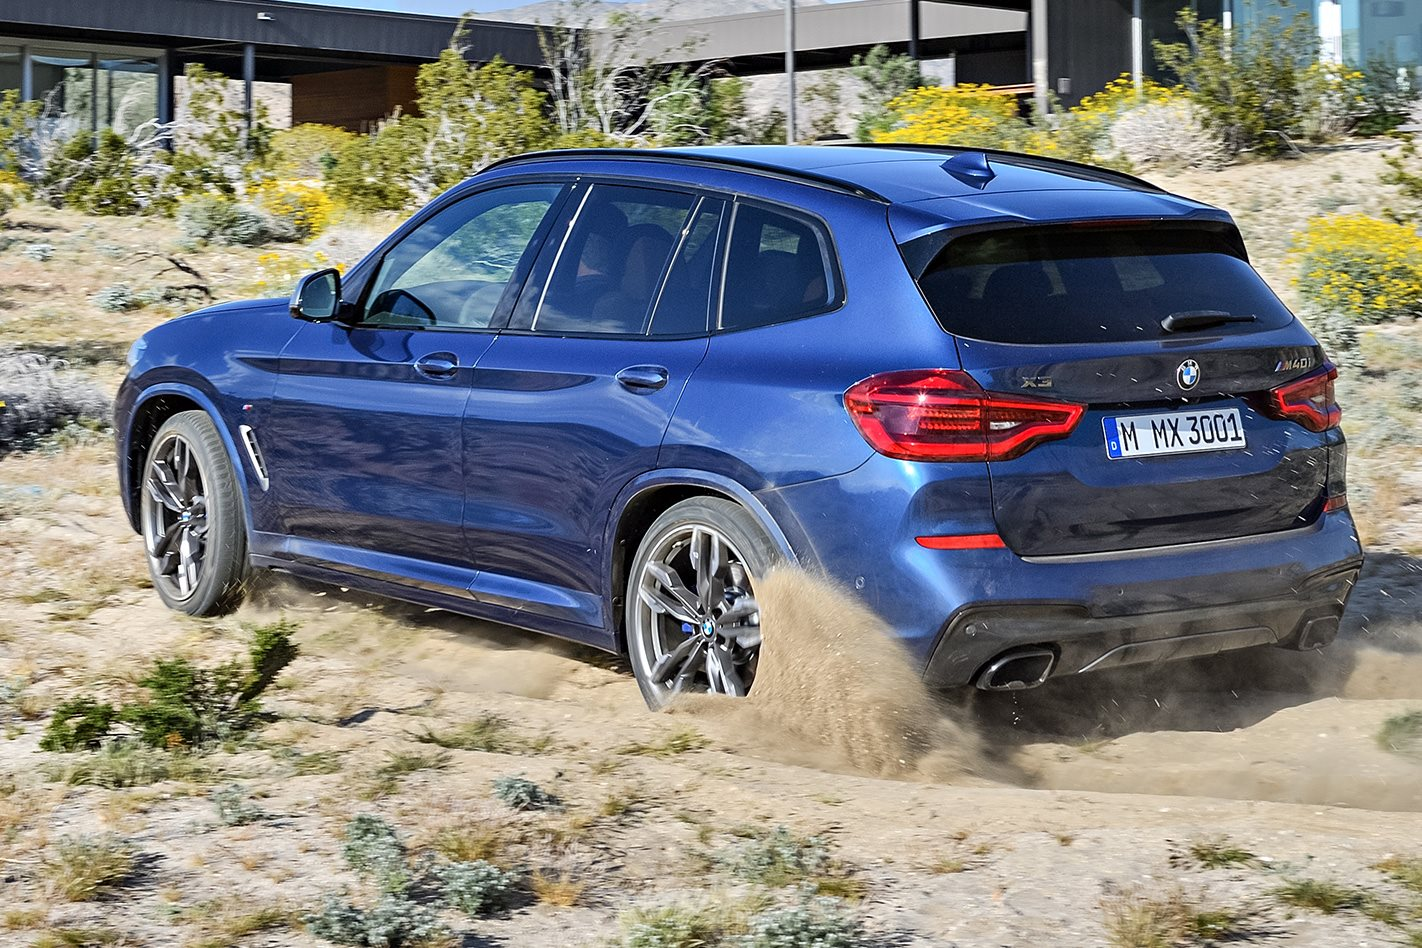 2018 bmw x3 m40i details revealed motor. Black Bedroom Furniture Sets. Home Design Ideas